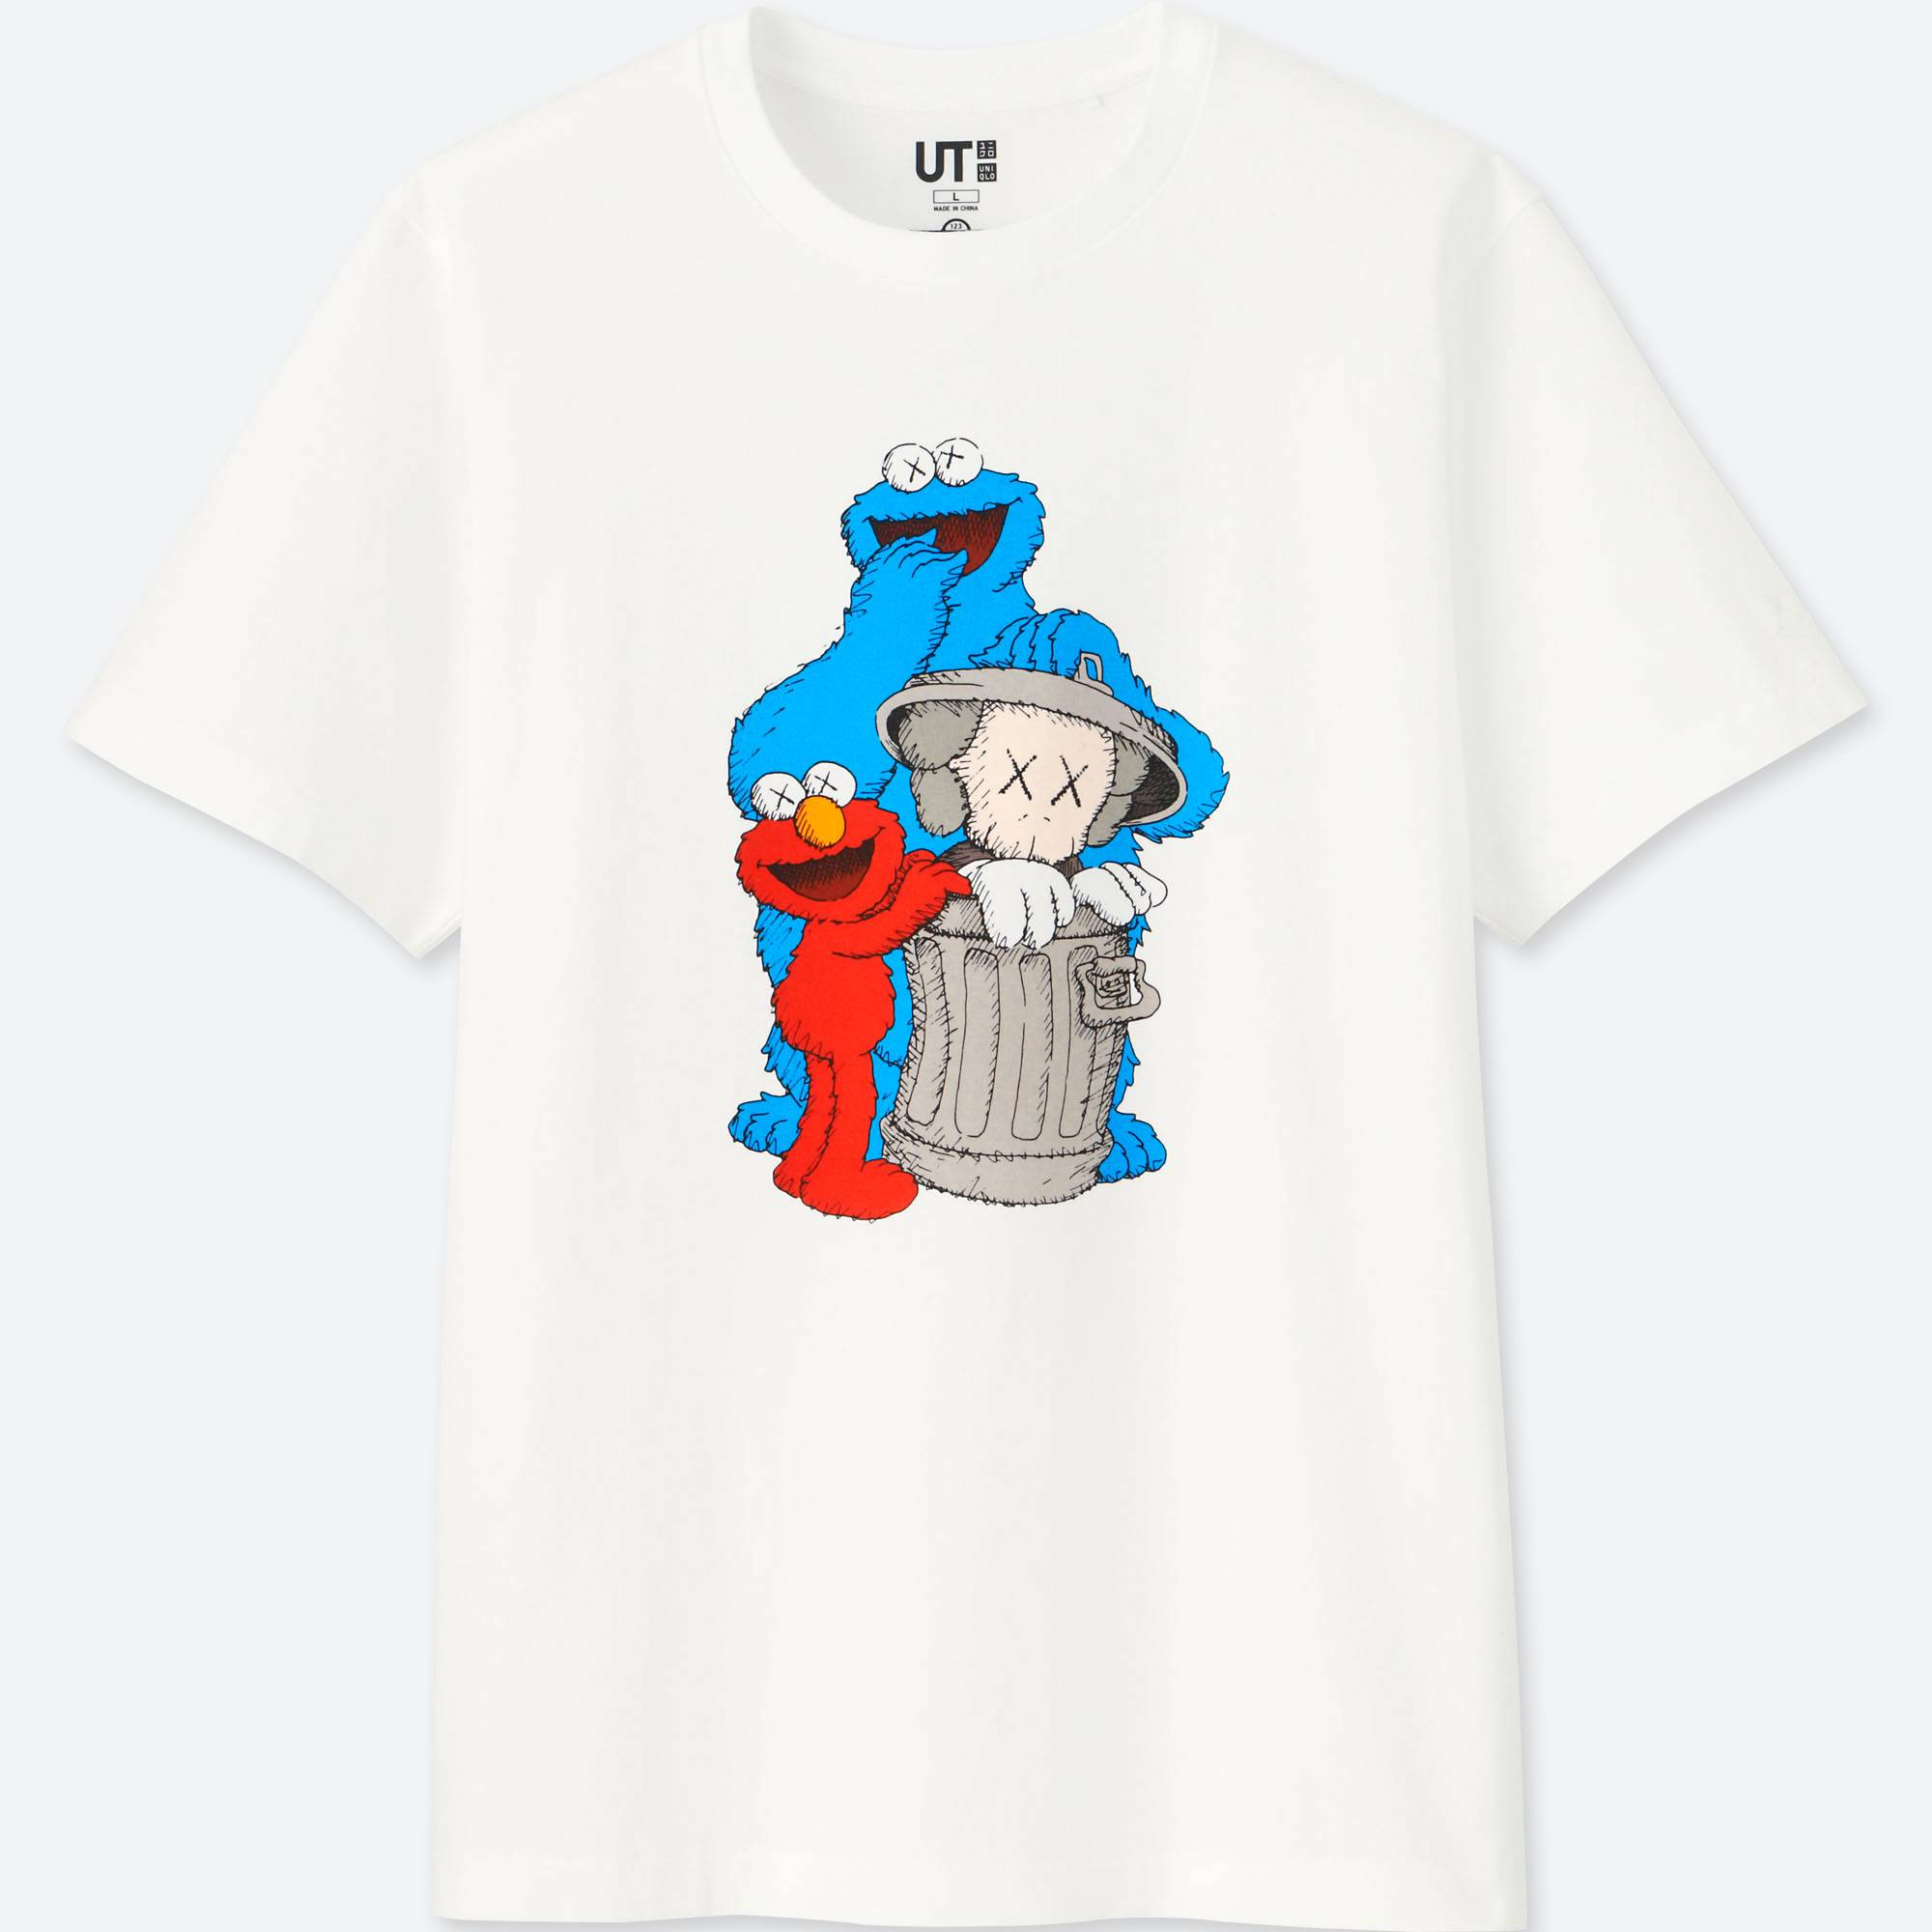 UNIQLO UT Joins With KAWS And Sesame Street For New